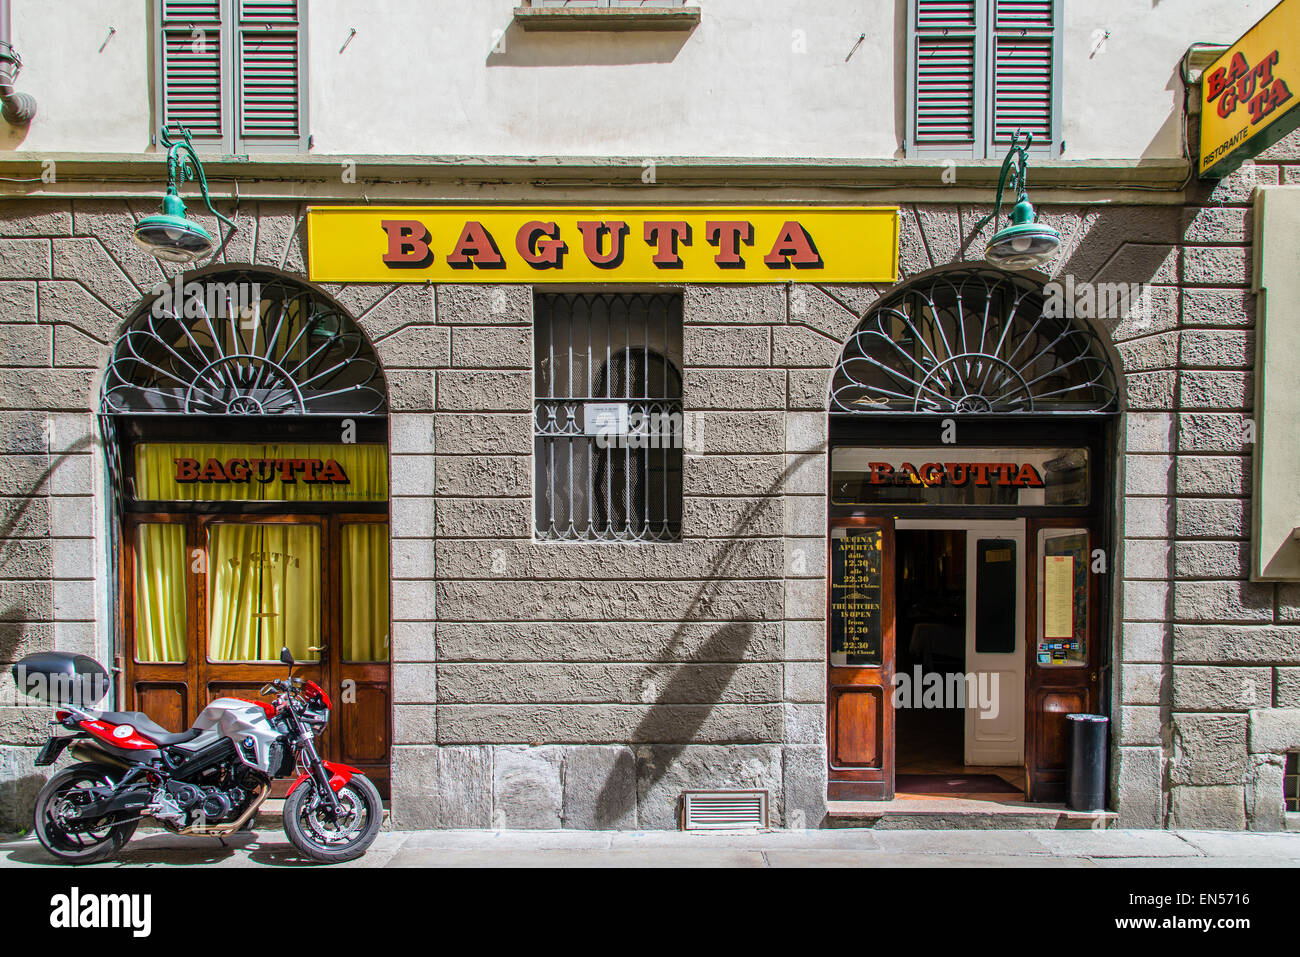 The historic Bagutta trattoria restaurant, Milan, Lombardy, Italy. Since 1927 it's home of the first Italian literary - Stock Image